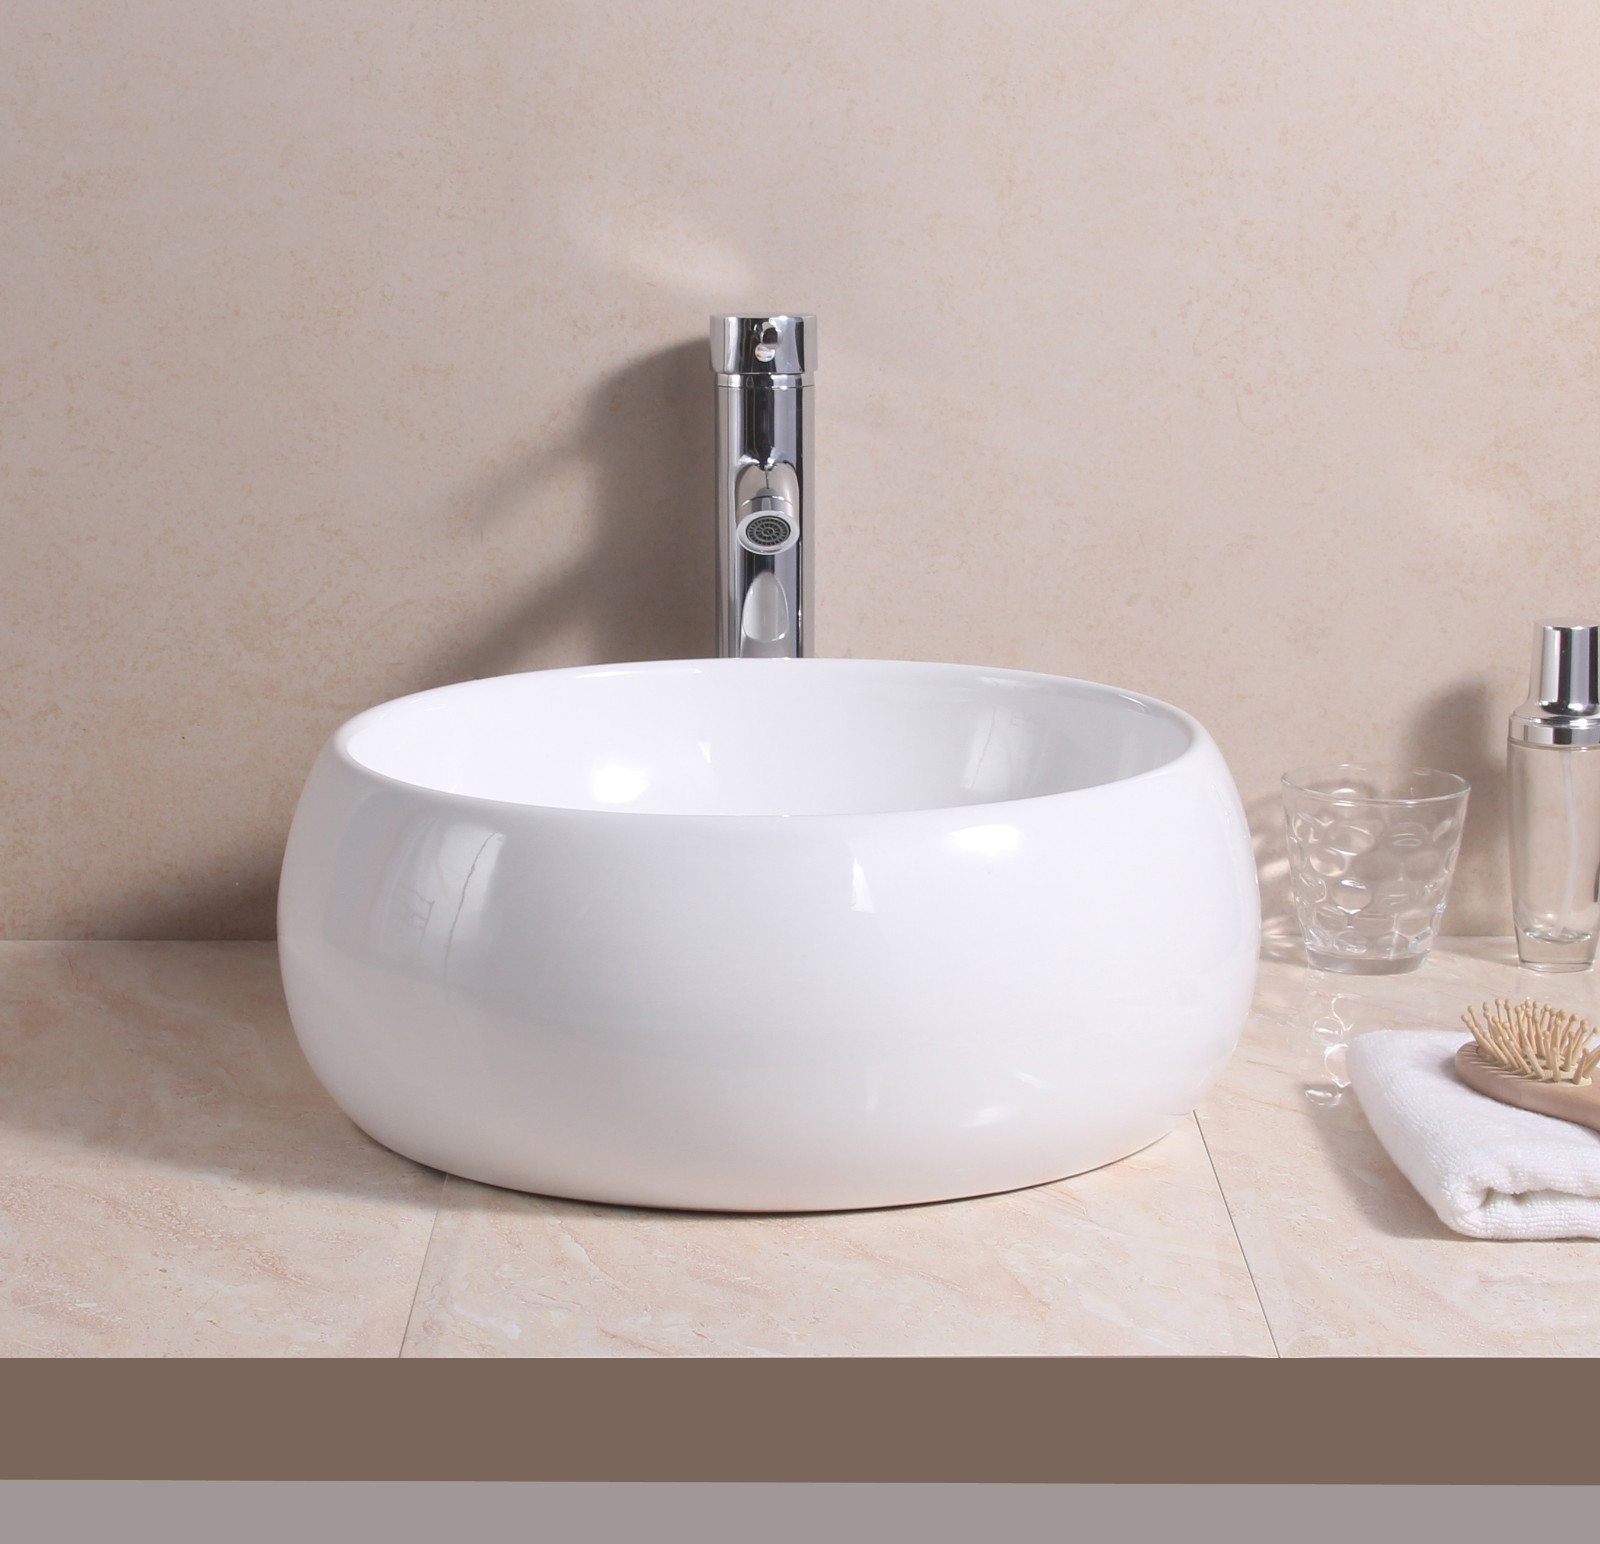 Slim oval counter top basin vanity sink w pop up plug waste ebay - Slim cloakroom basin ...